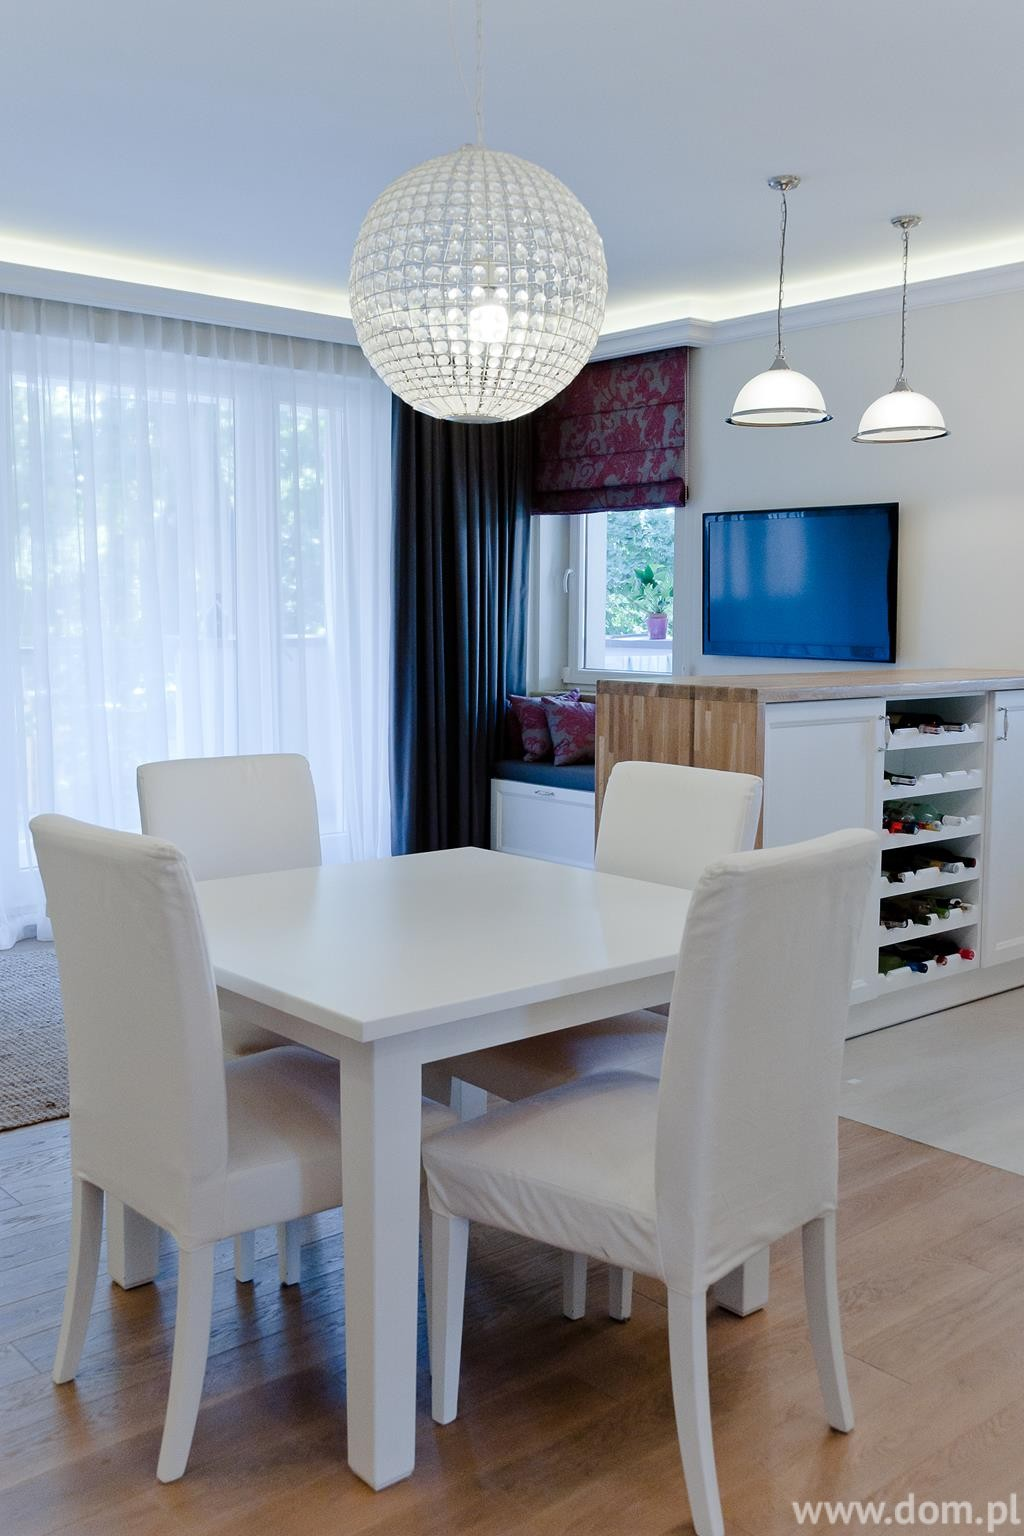 Apartament Anin, projekt: THE SPACE